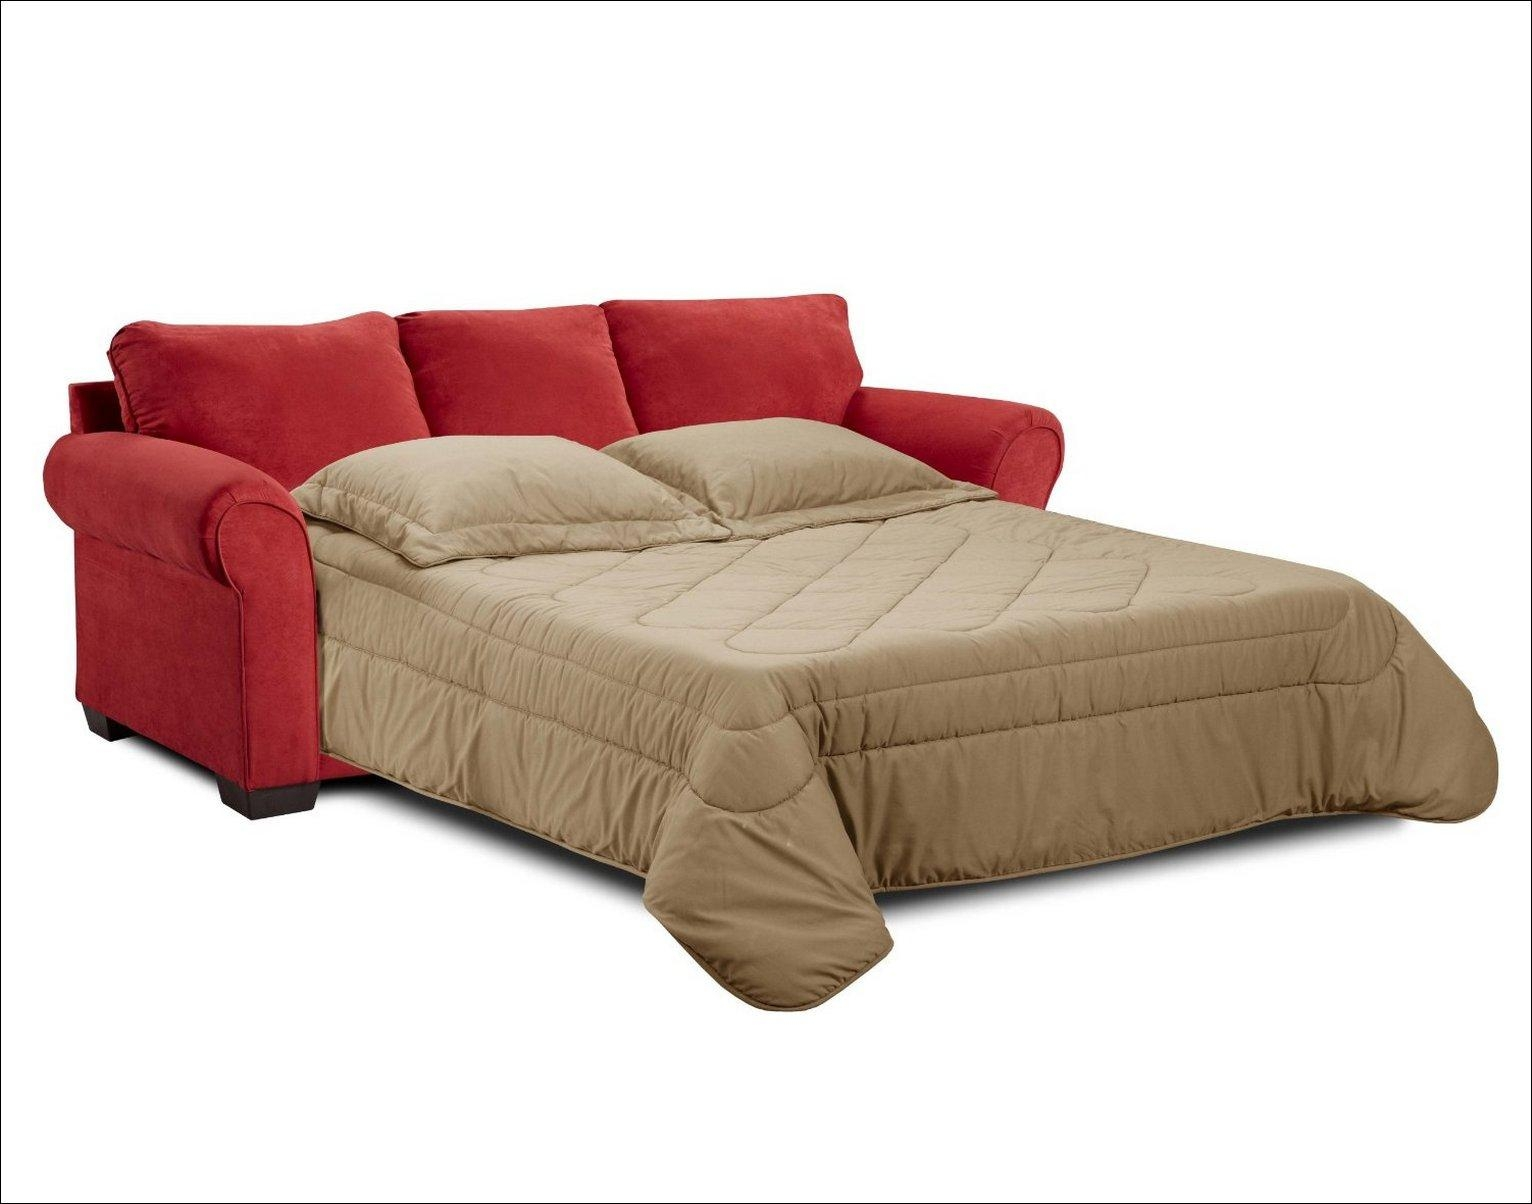 Furniture: Cool Tips For Your Living Room With Comfortable Sears Intended For Sears Sofa (Image 3 of 20)